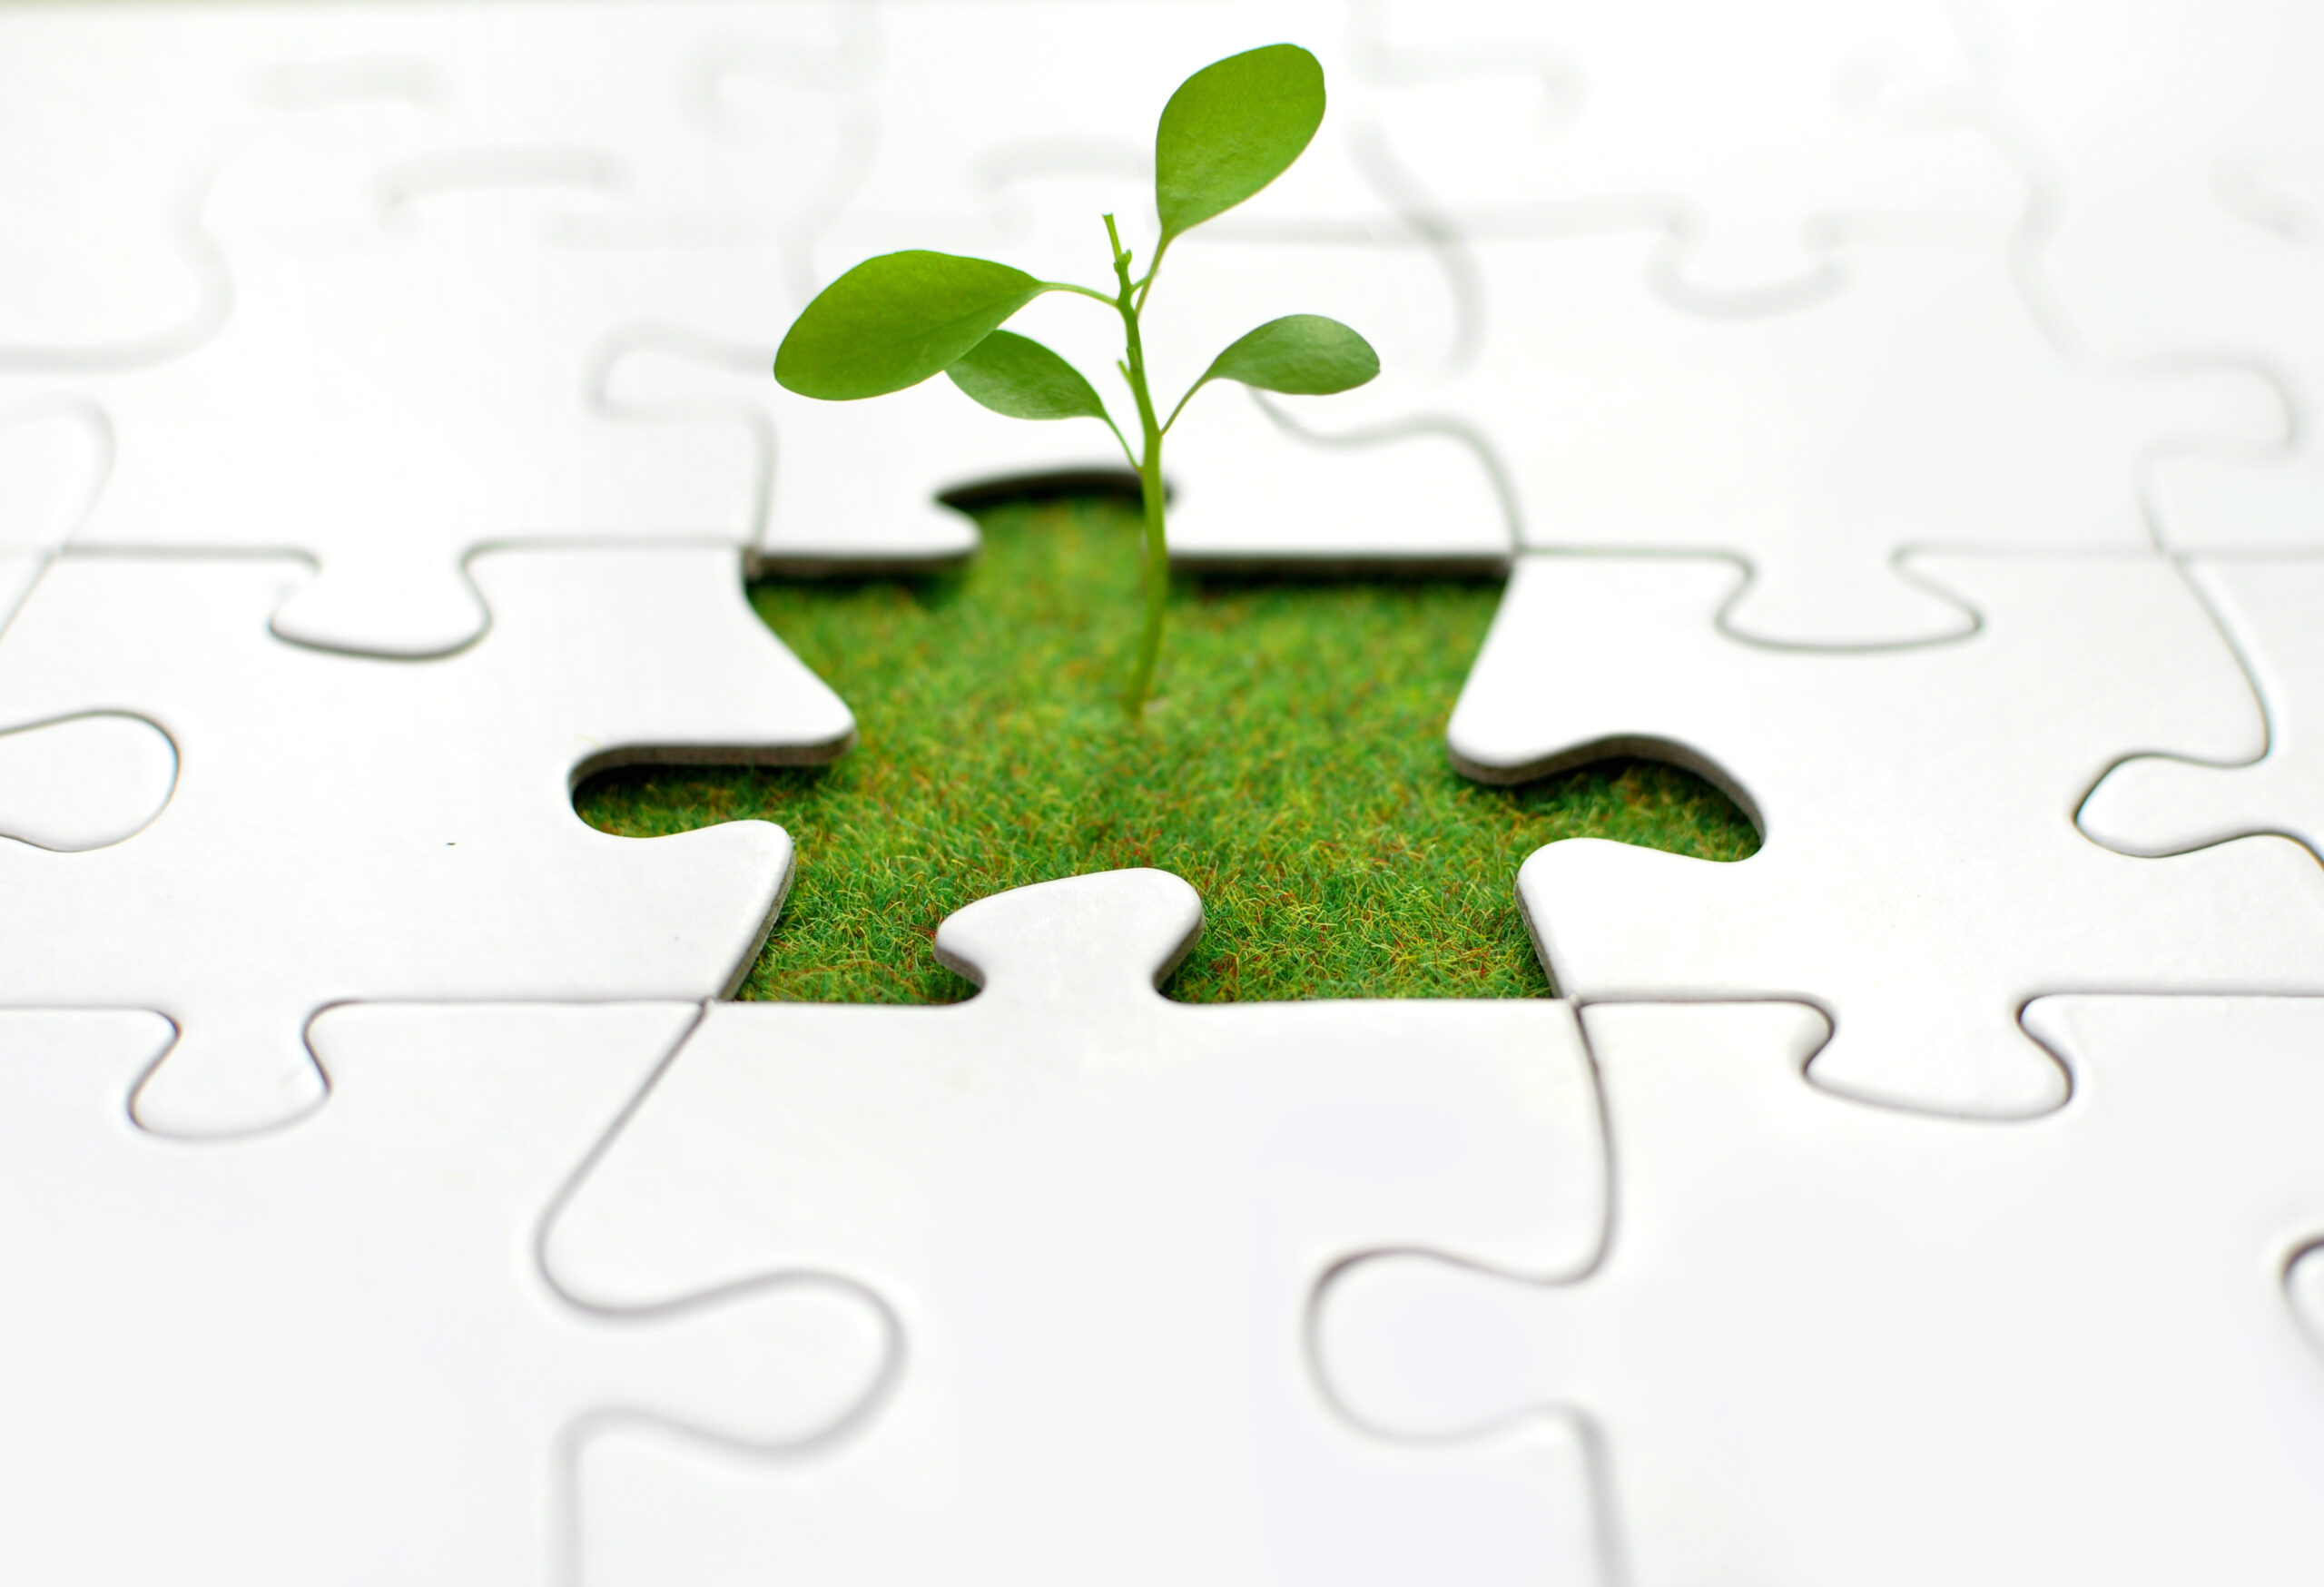 3 Simple ways your business can work towards a greener future